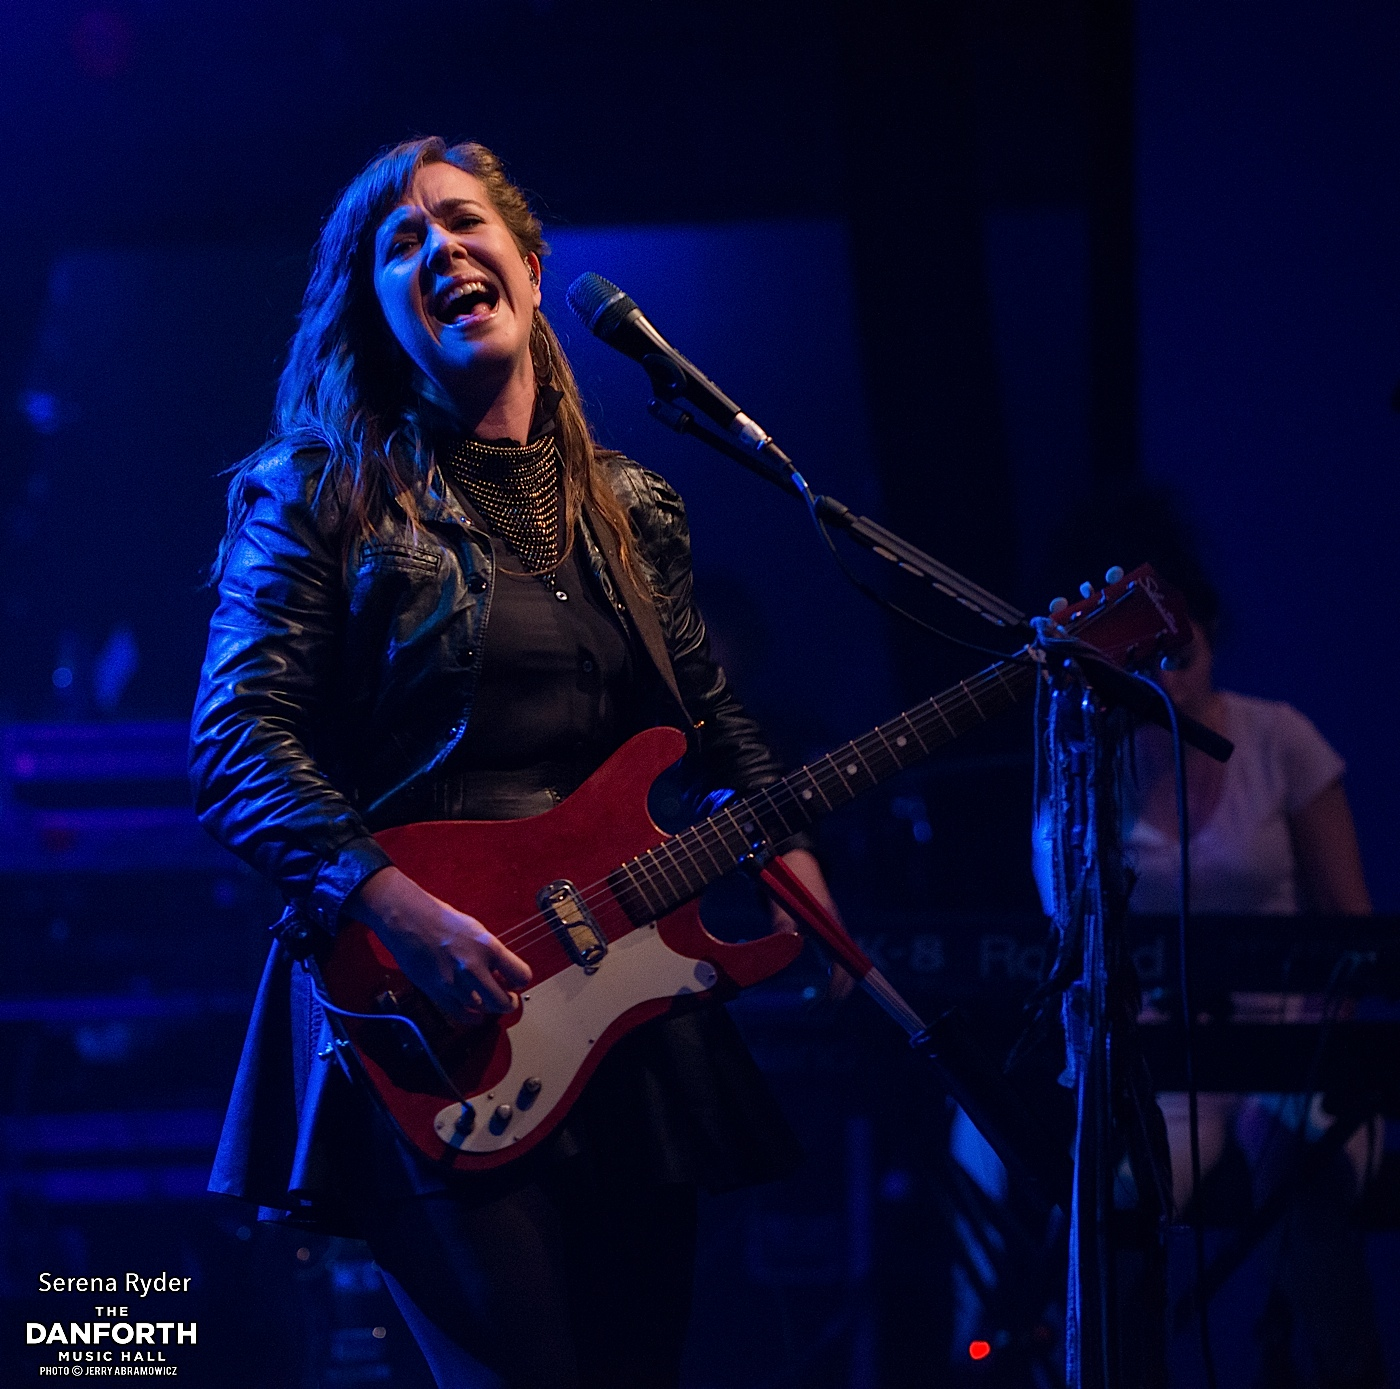 SERENA RYDER plays to a packed house at The Danforth Music Hall.